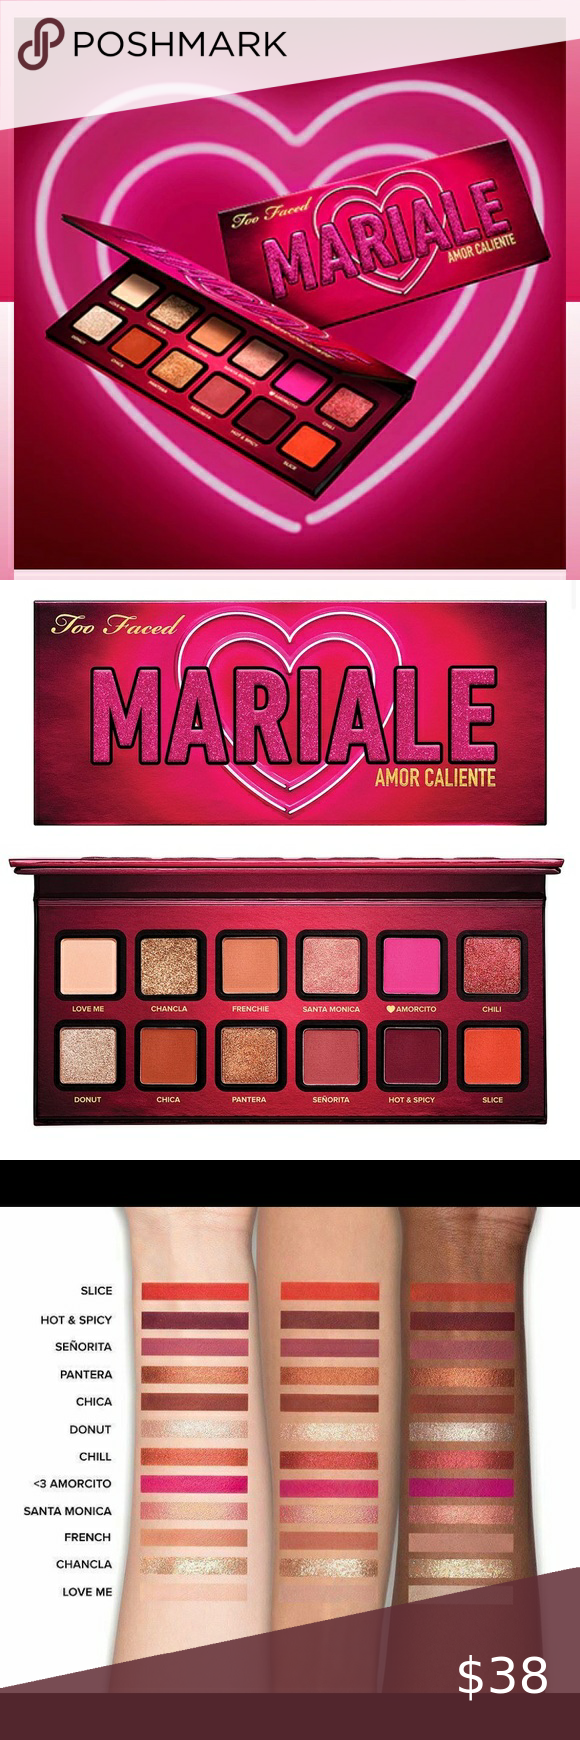 Check out this listing I just found on Poshmark: Too Faced Amor Caliente Eyeshadow & Cheek Palette. #shopmycloset #poshmark #shopping #style #pinitforlater #Too Faced #Other